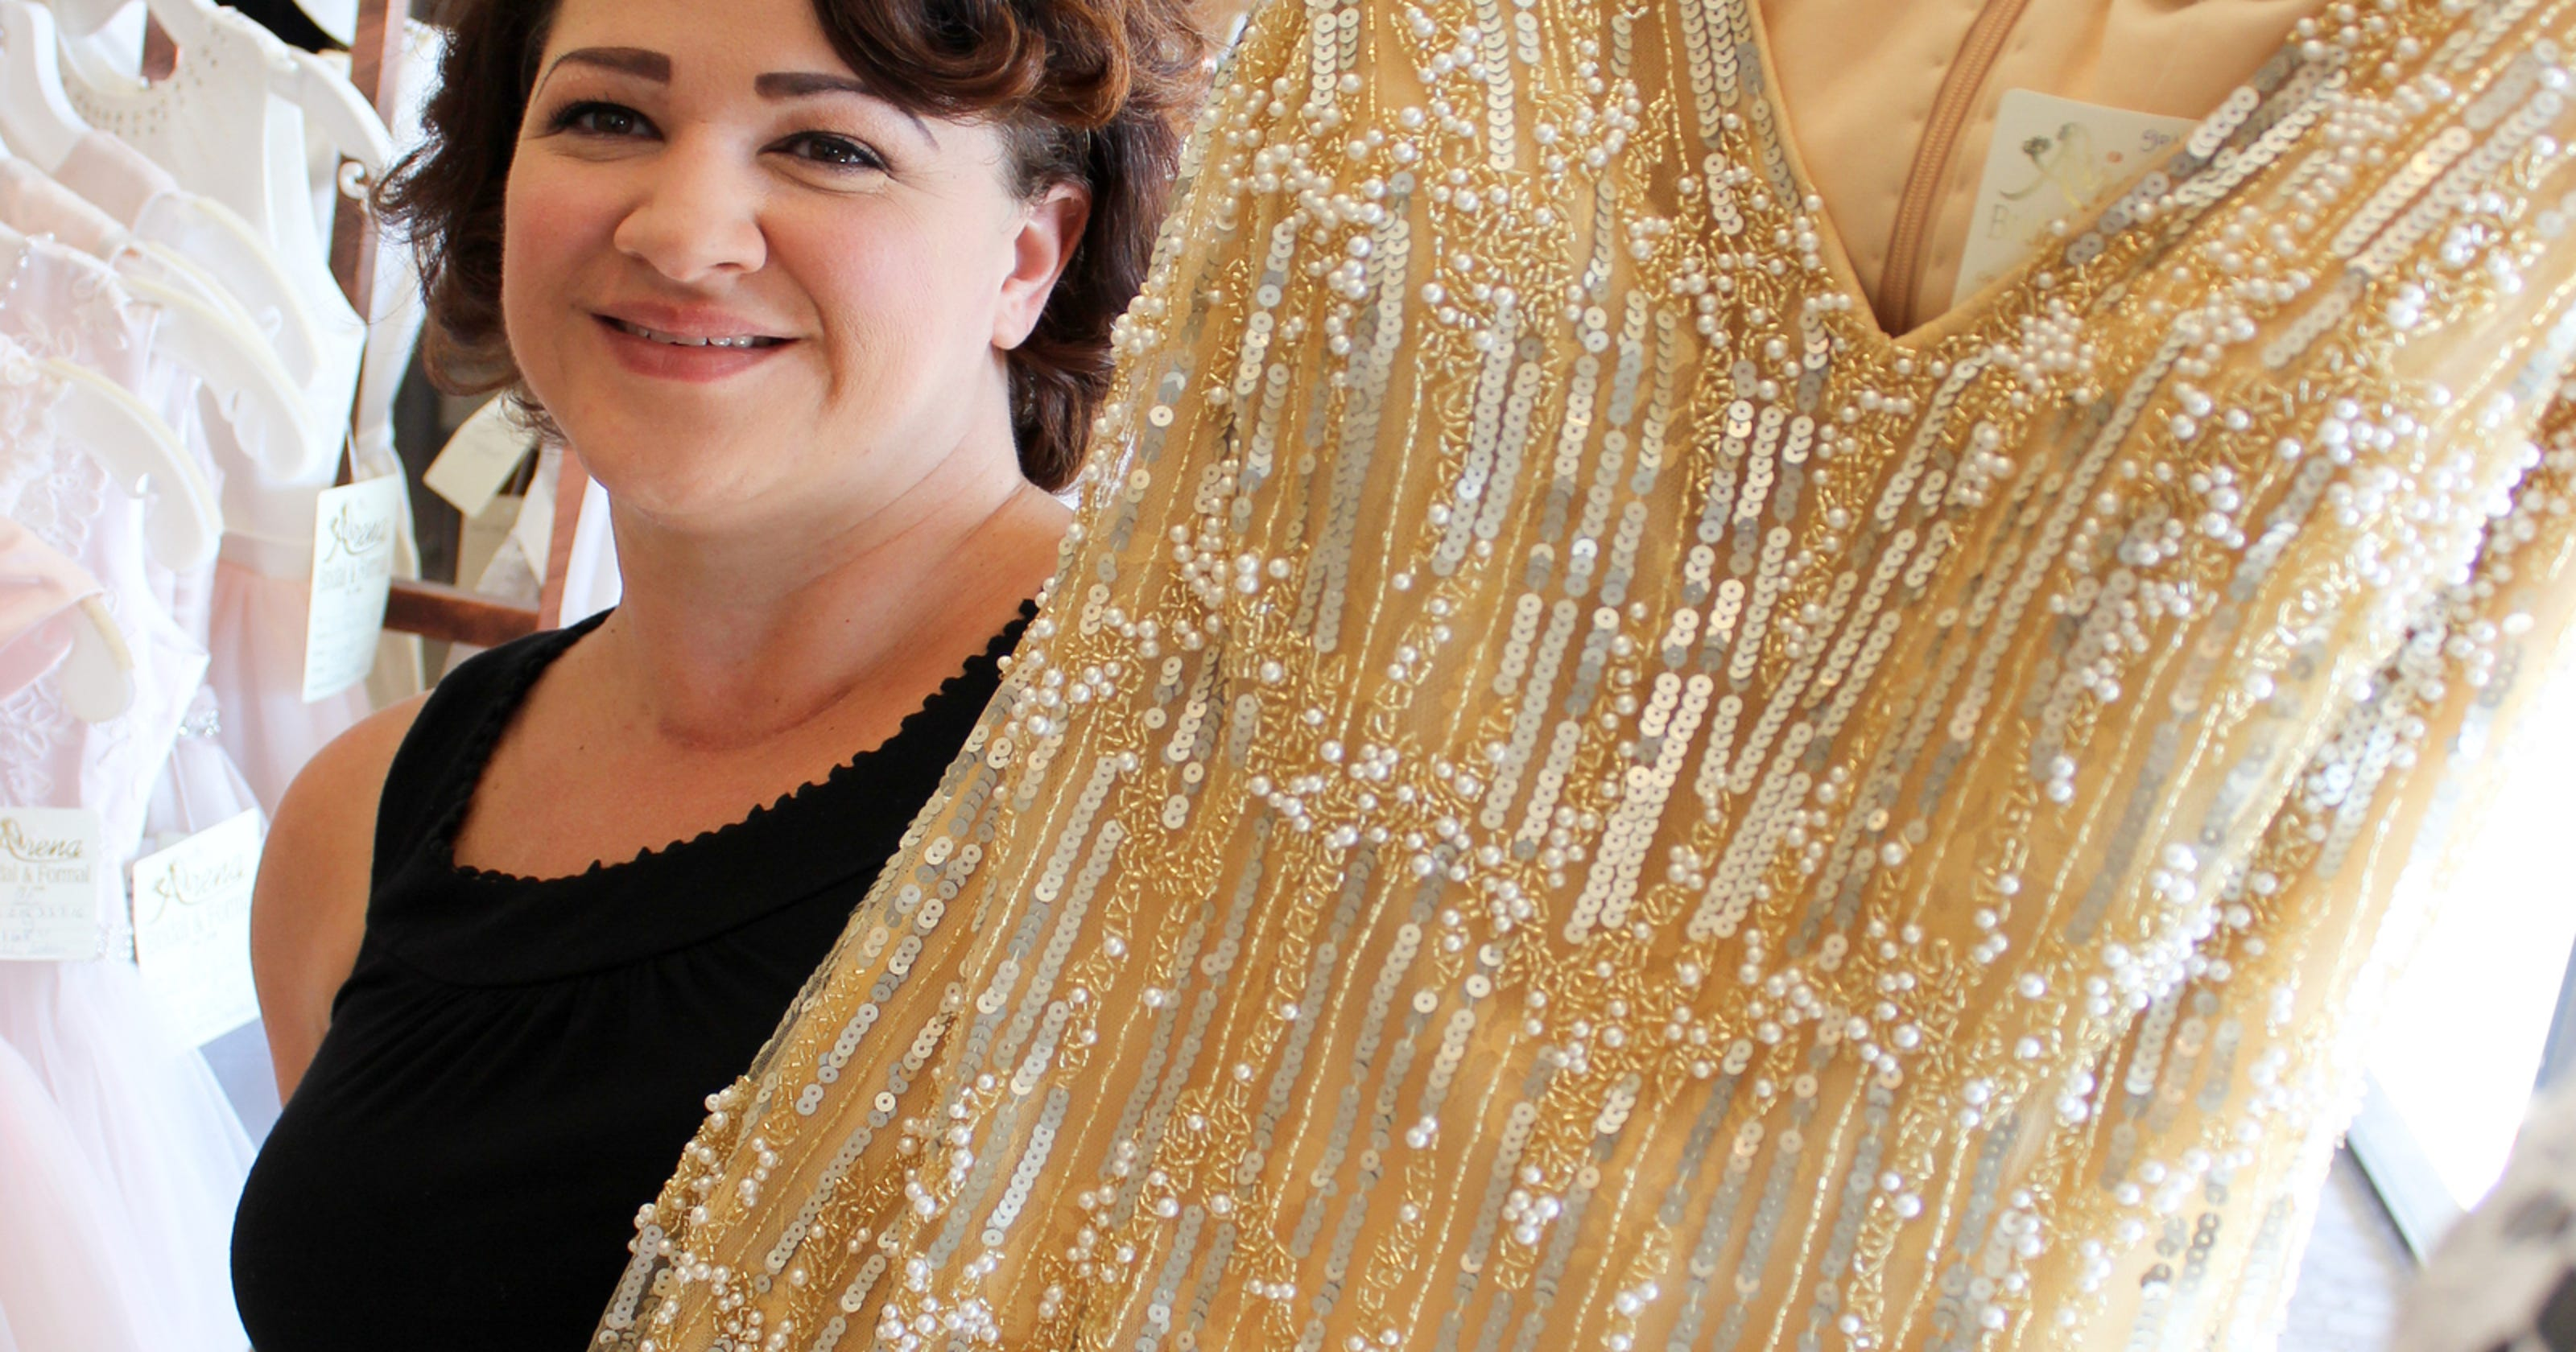 My quest to find the perfect mother-of-the-bride dress